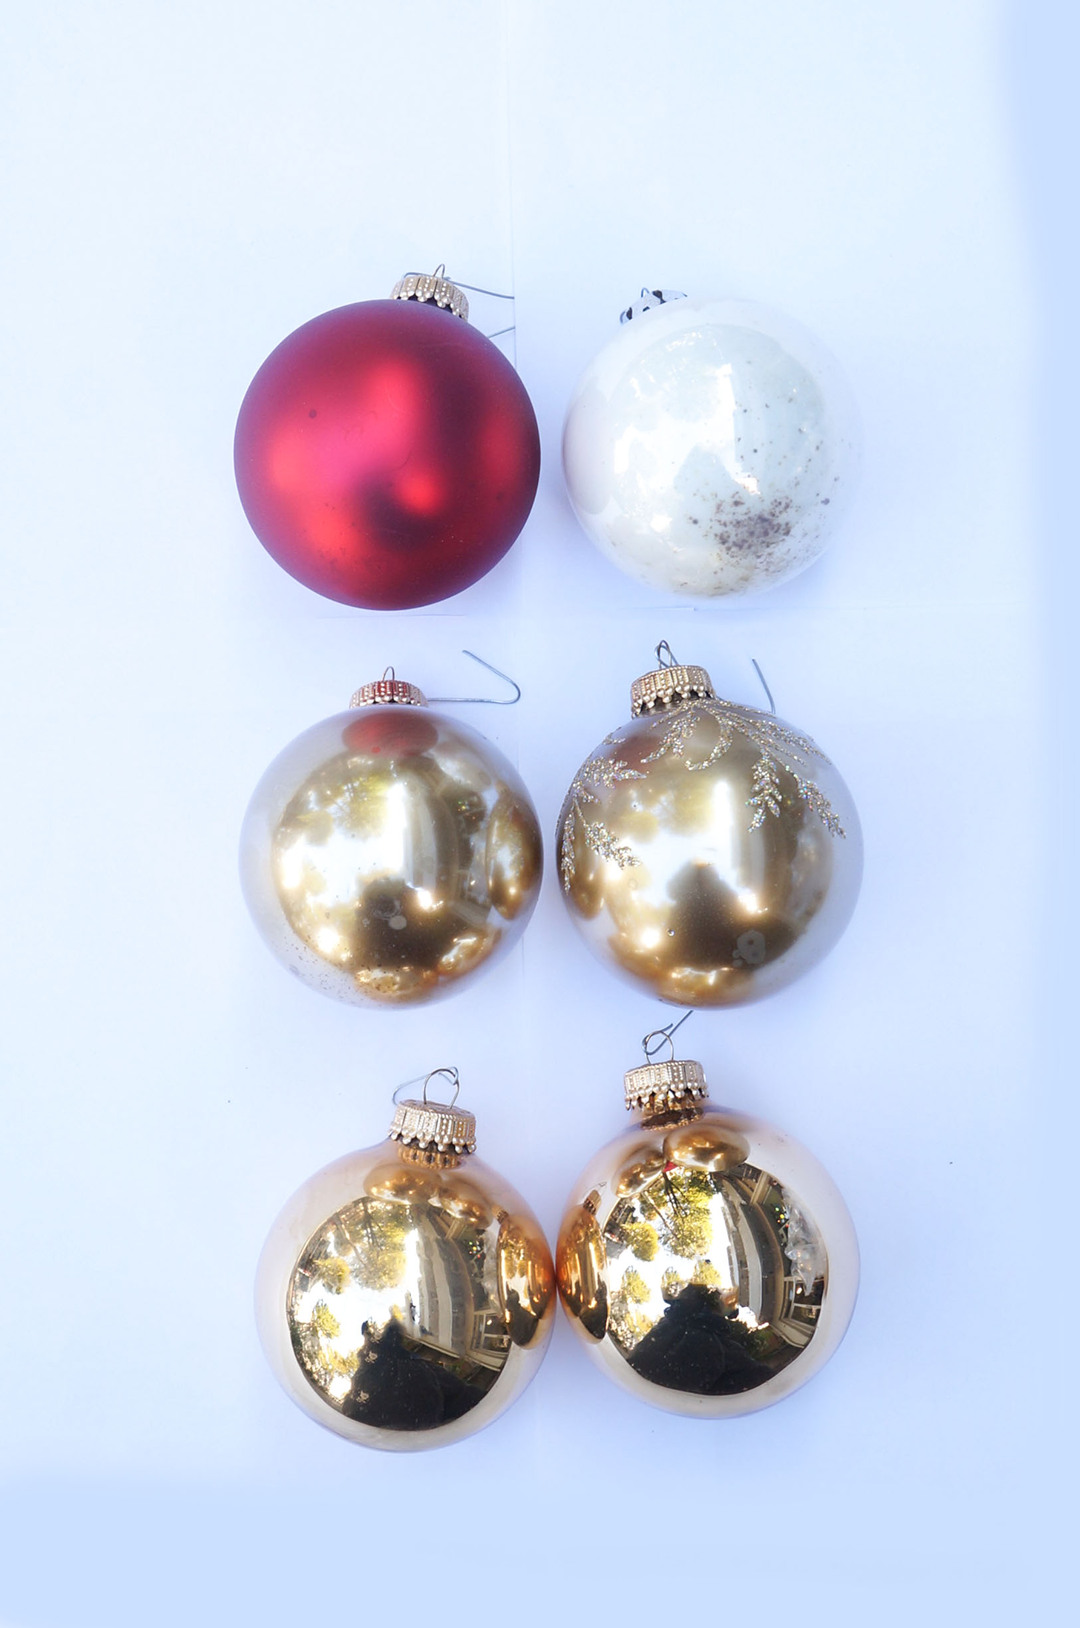 Vintage Blown Glass Christmas Ball Ornament/ヴィンテージ クリスマス オーナメント 吹きガラス ボール レトロ 6個セット 6